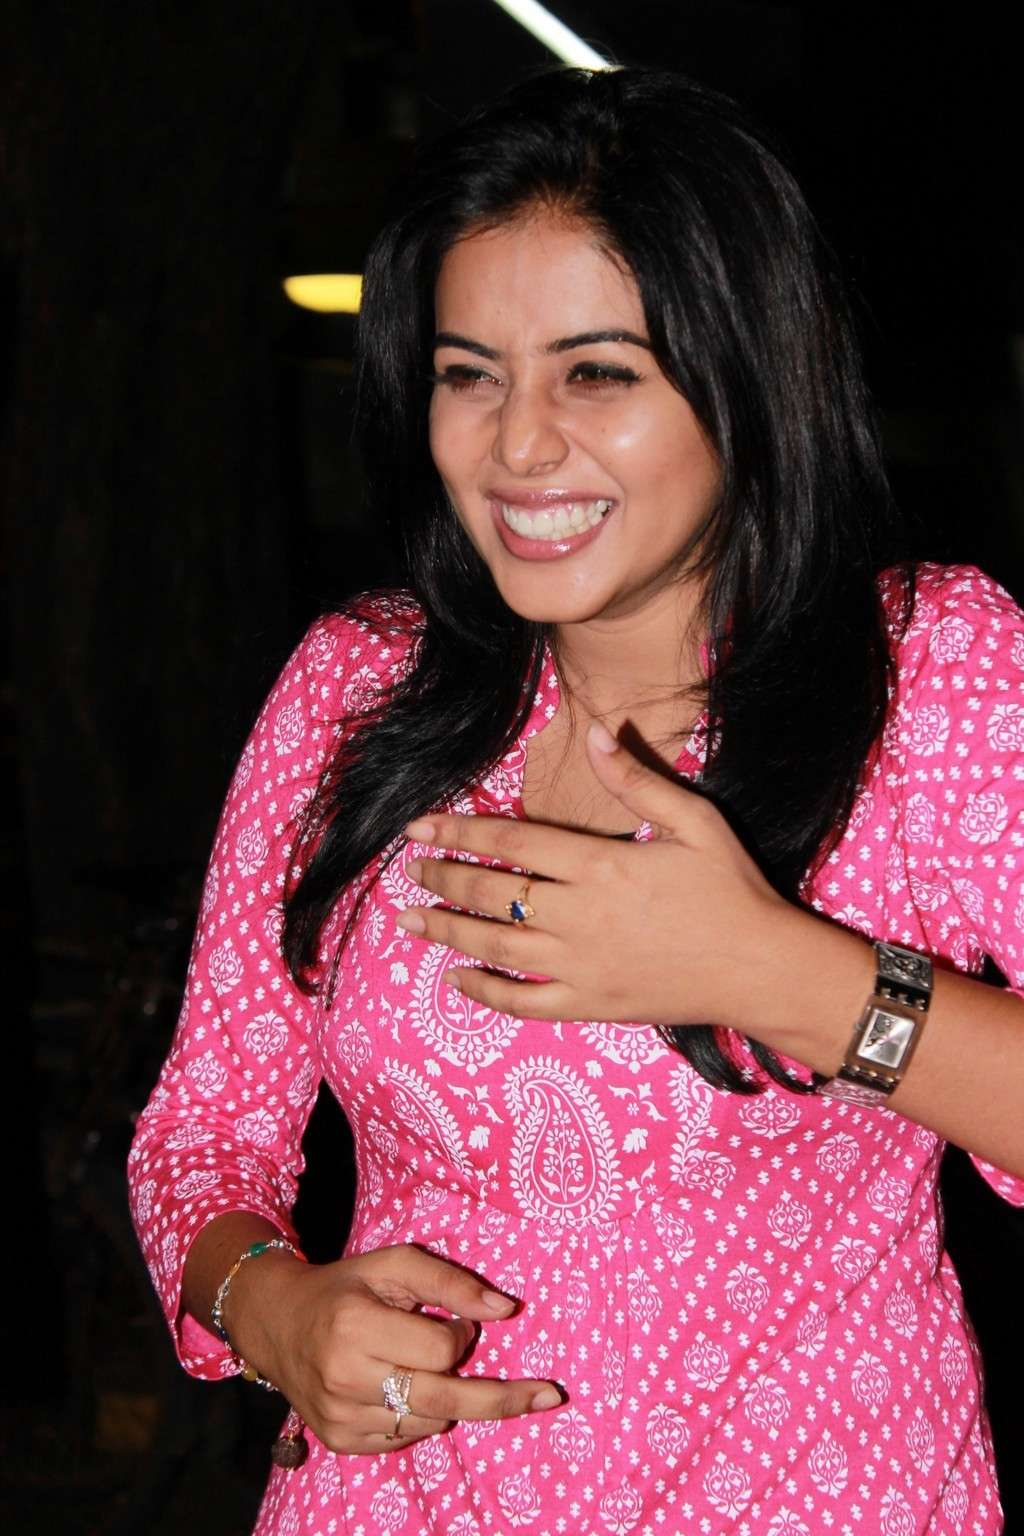 Poorna Bright in Pink Top Poorna17